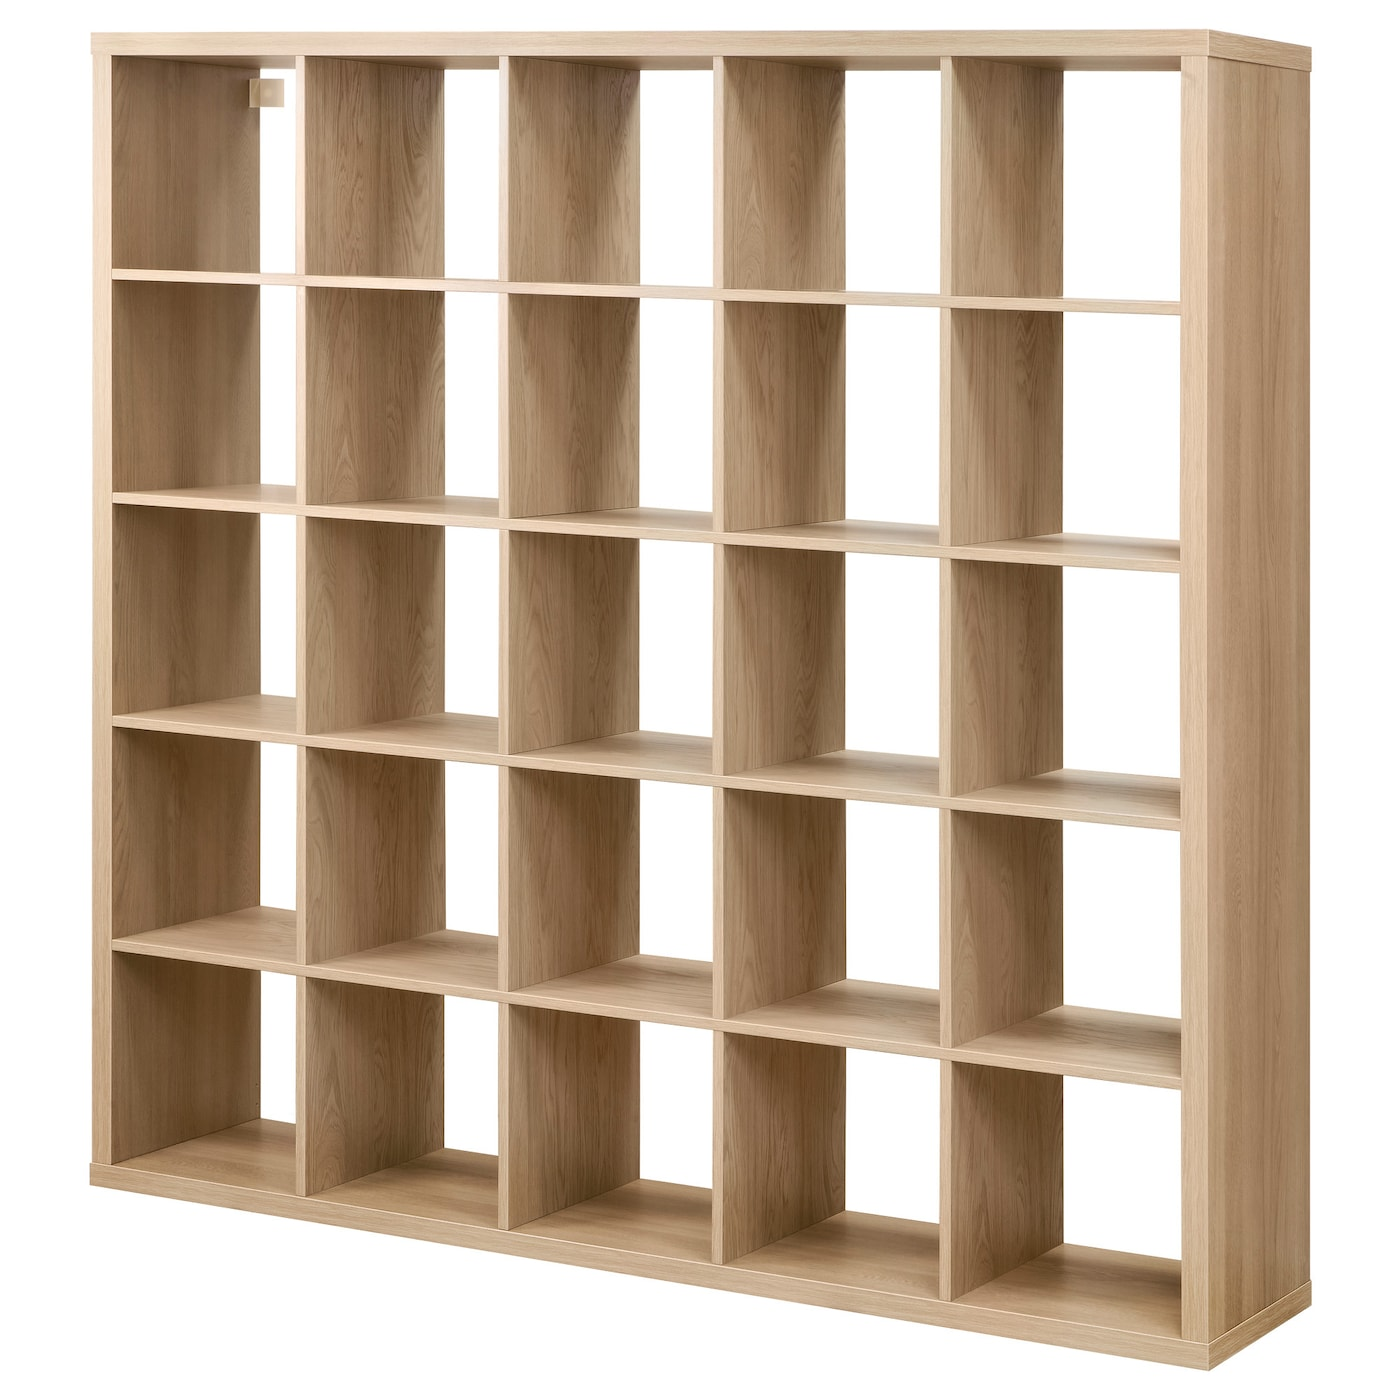 IKEA KALLAX shelving unit. Shelving Units   Shelving Systems   IKEA